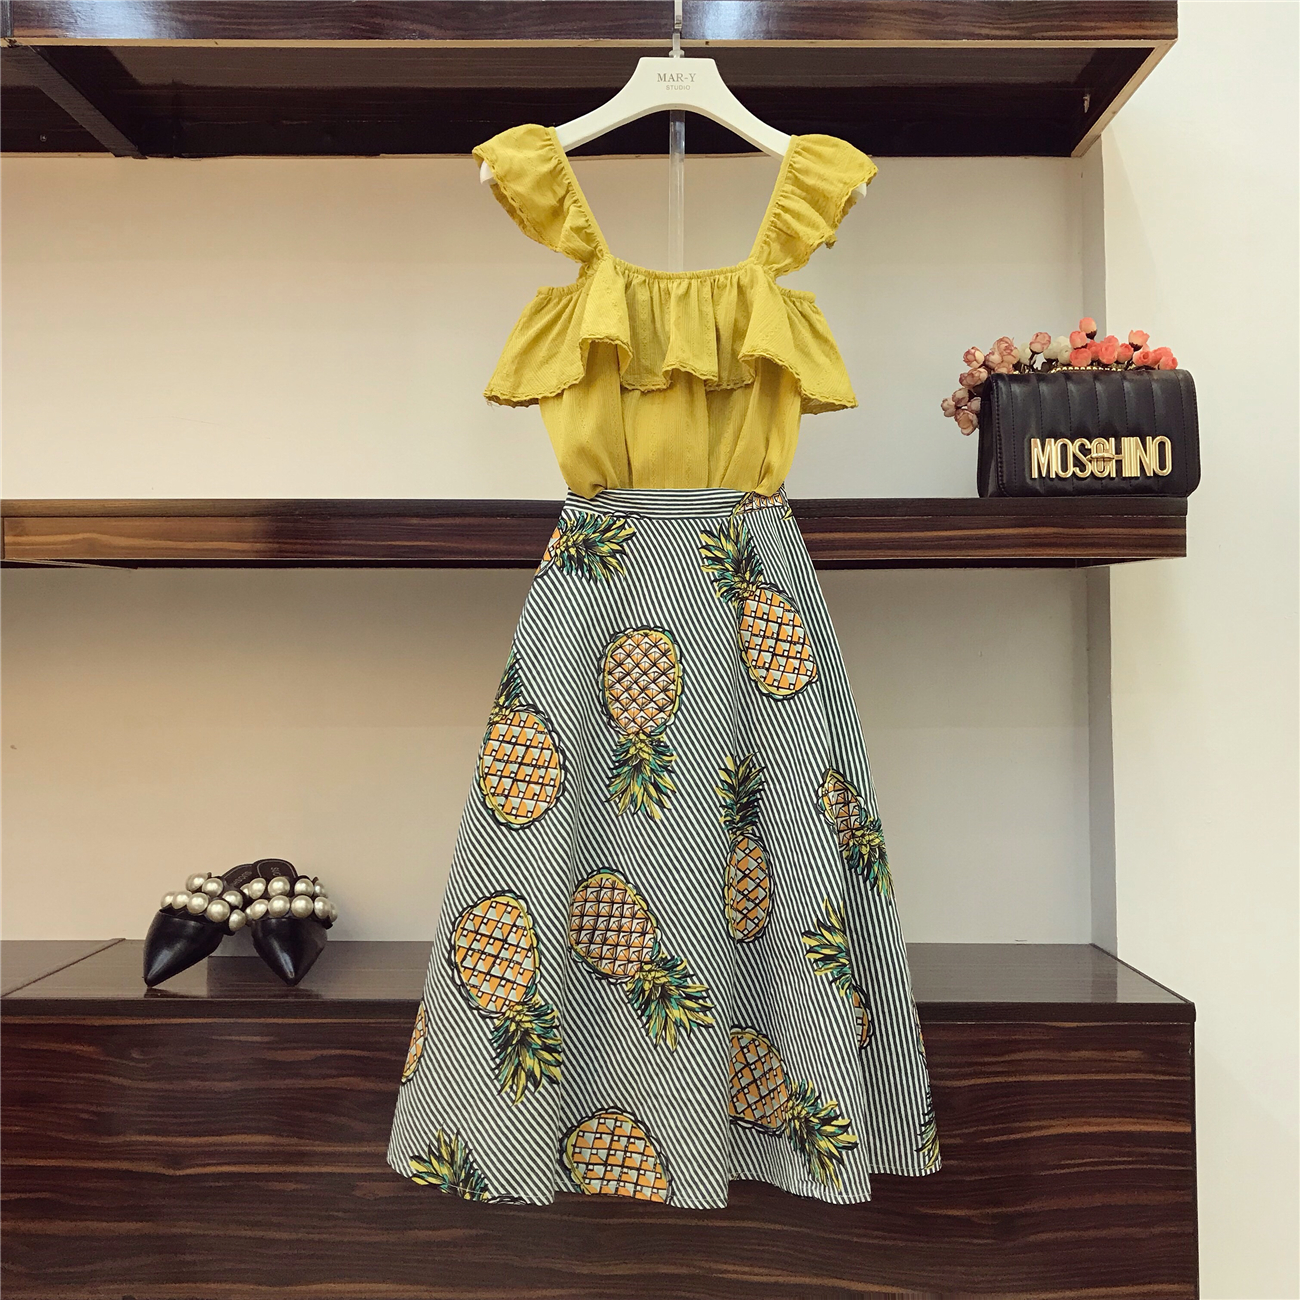 Summer Two-piece Sets Women Retro Ruffles Crop Top + Pineapple Skirt Girl Ladies Twopiece Holiday Fashion Skirts Suit